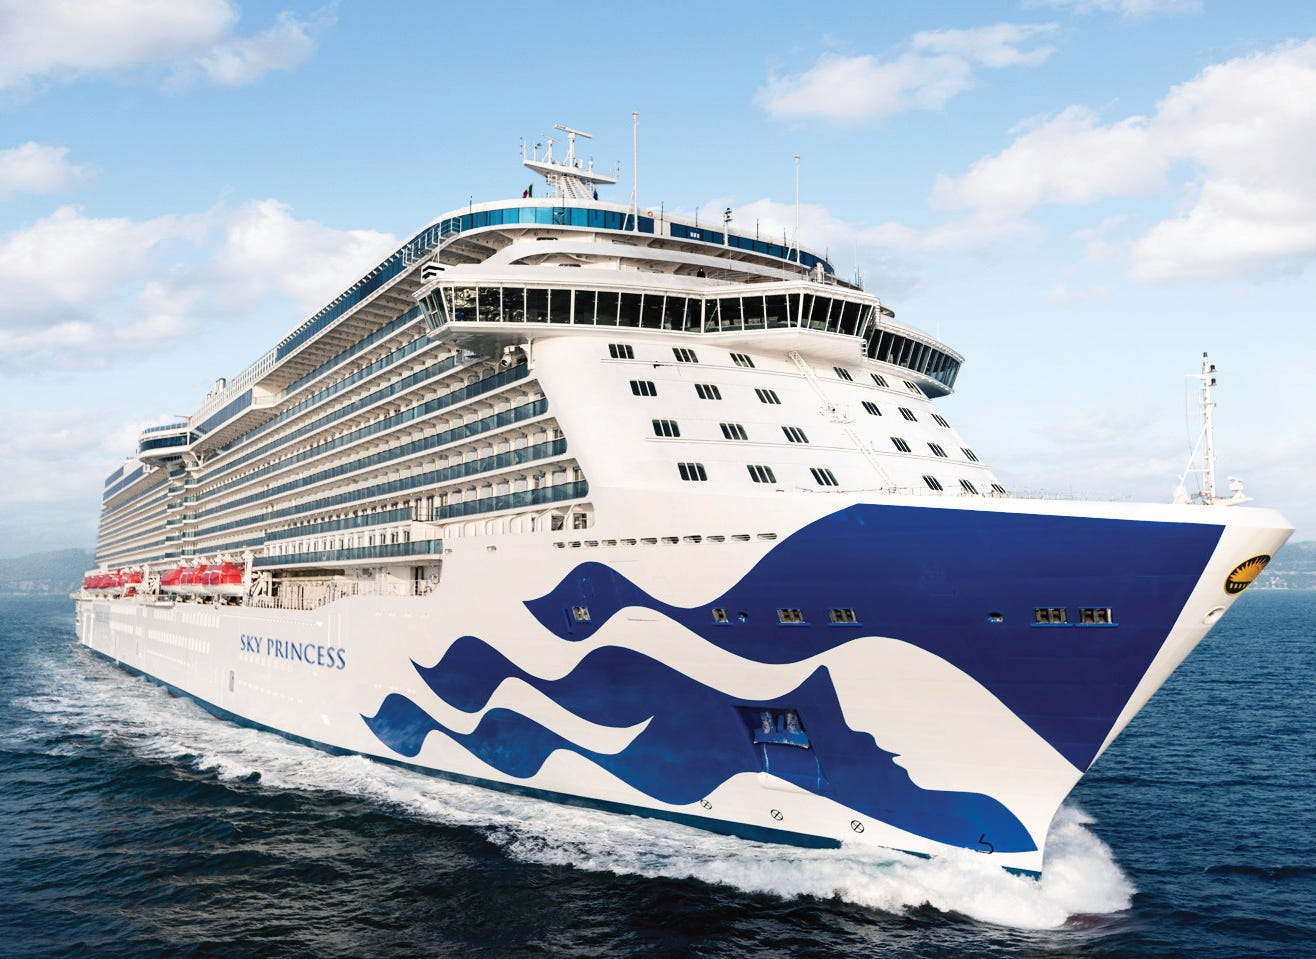 Princess Cruises in 2019 will unveil a new ship called Sky Princess. Carrying 3,660 passengers at double occupancy, it'll be the fourth vessel in the line's recent Royal Class series.